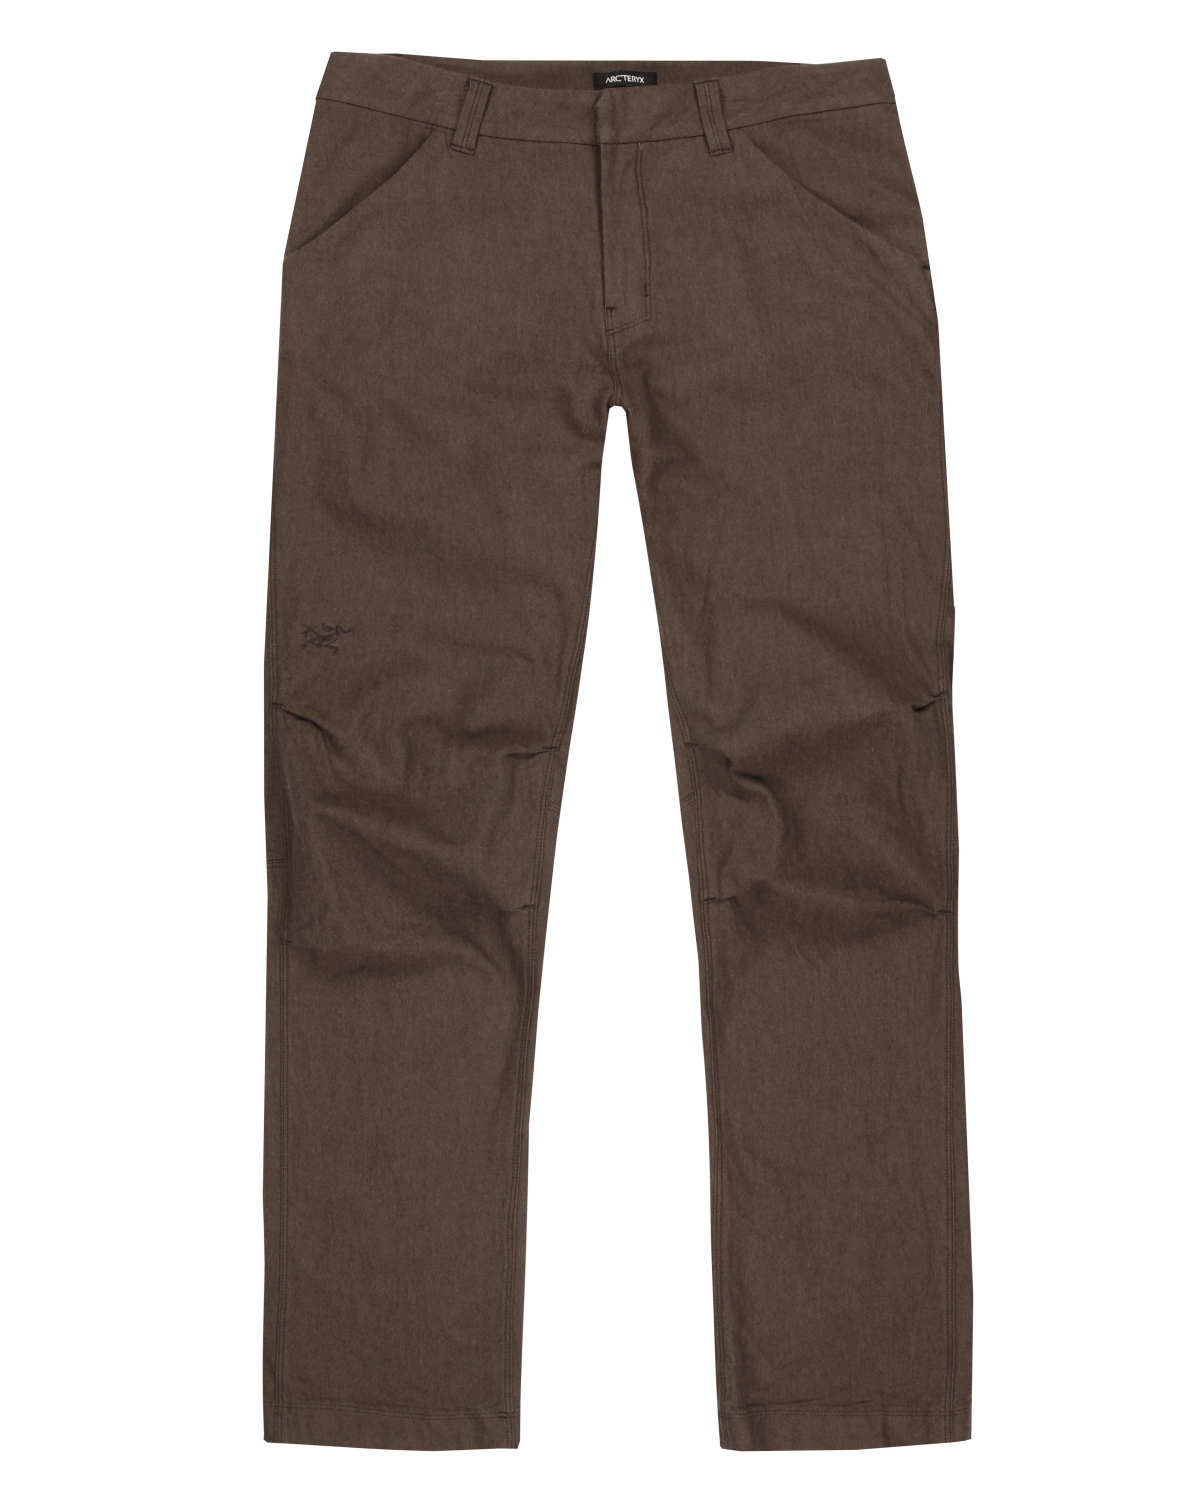 Main product image: Alden Pants Men's